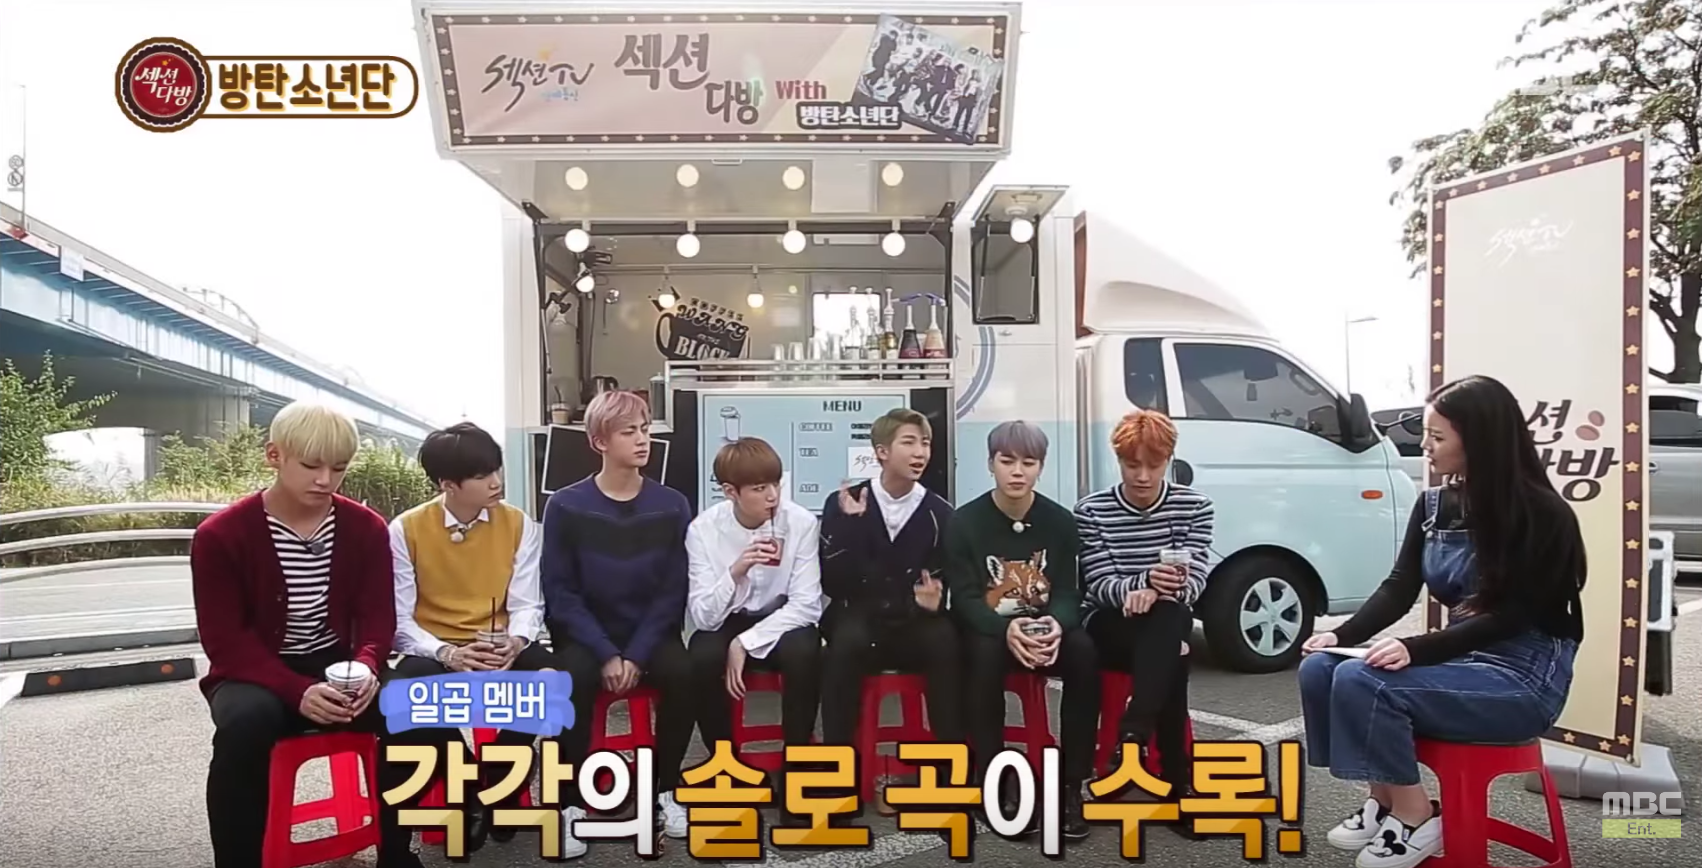 BTS's Staff Spill Secrets About Taking Care Of The BTS Members